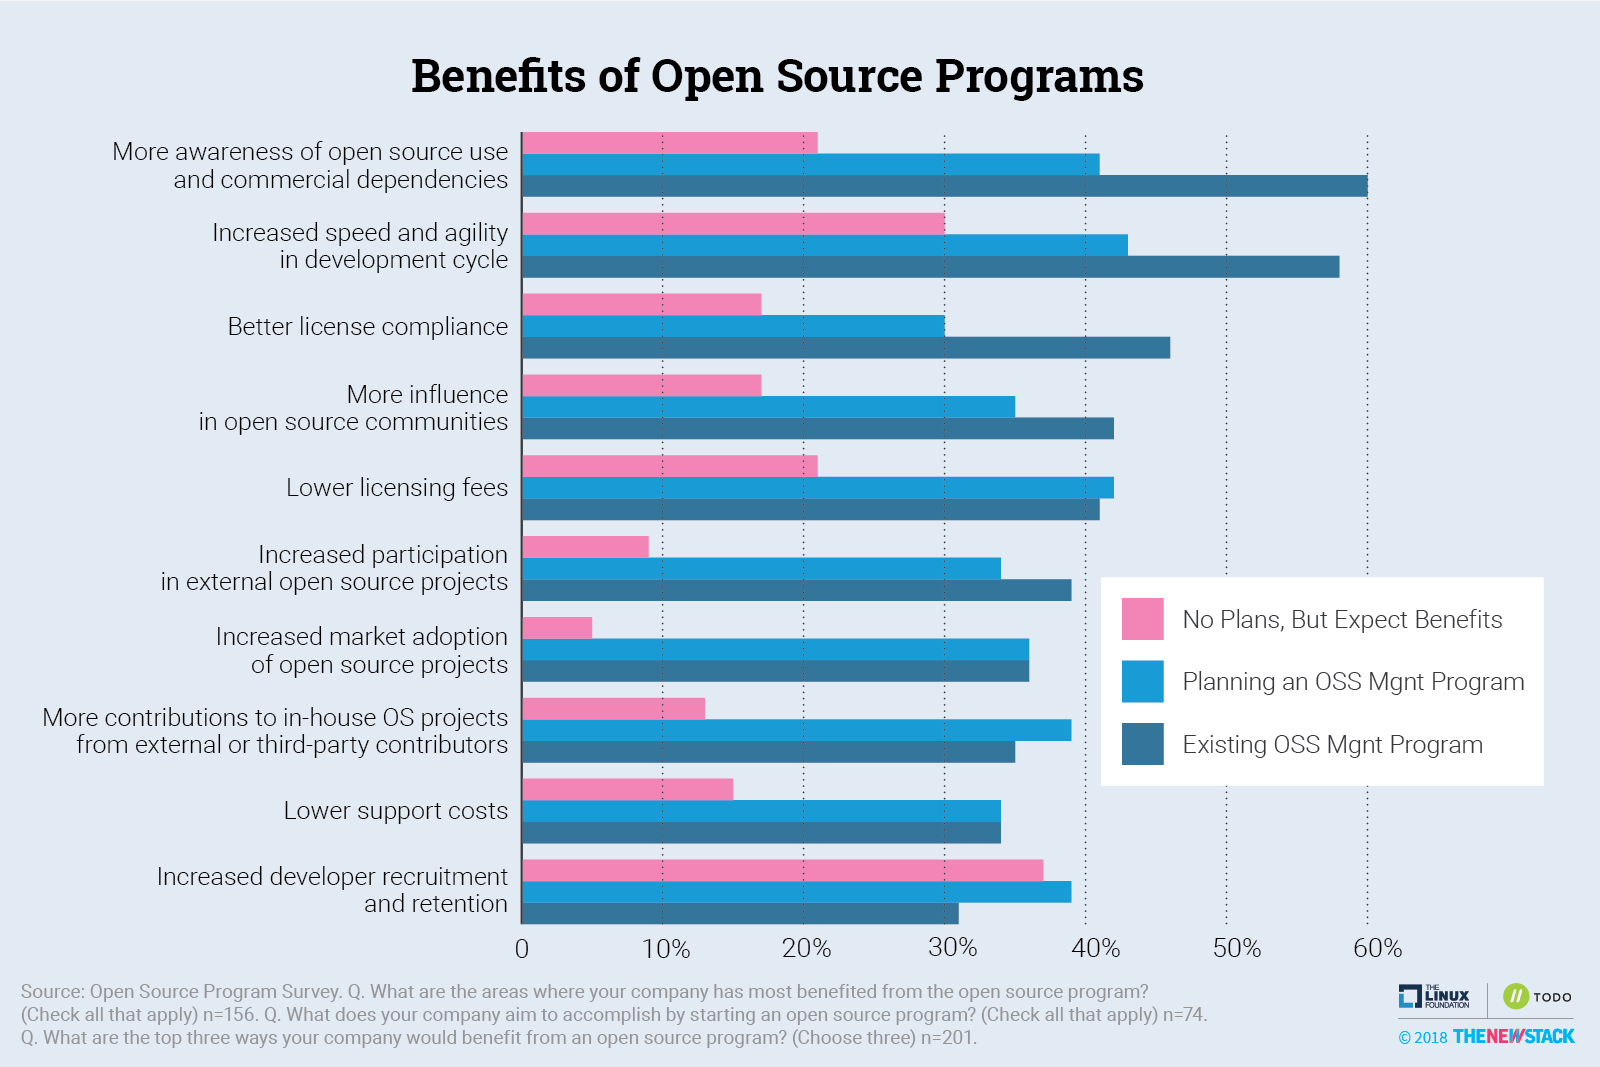 Survey: Open Source Programs Are a Best Practice Among Large